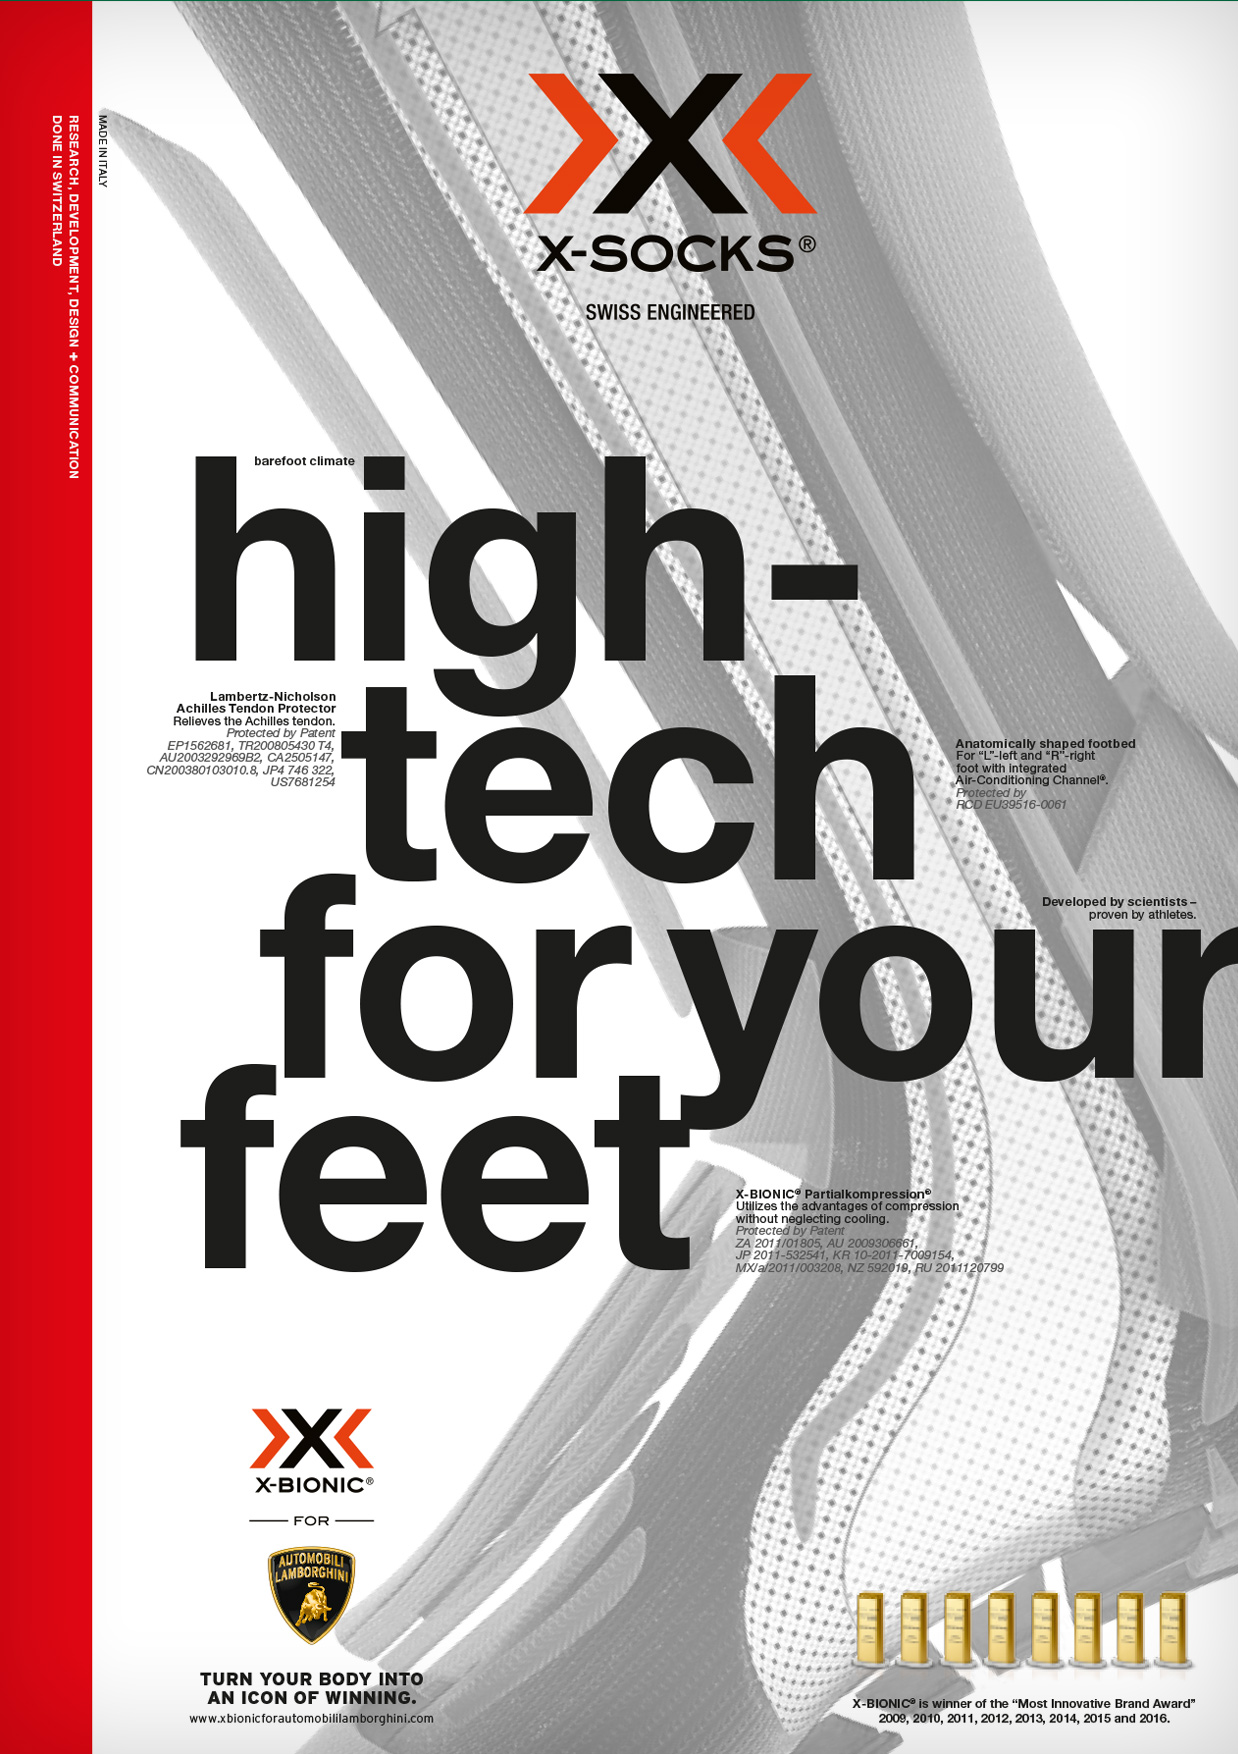 Hightech for your feet